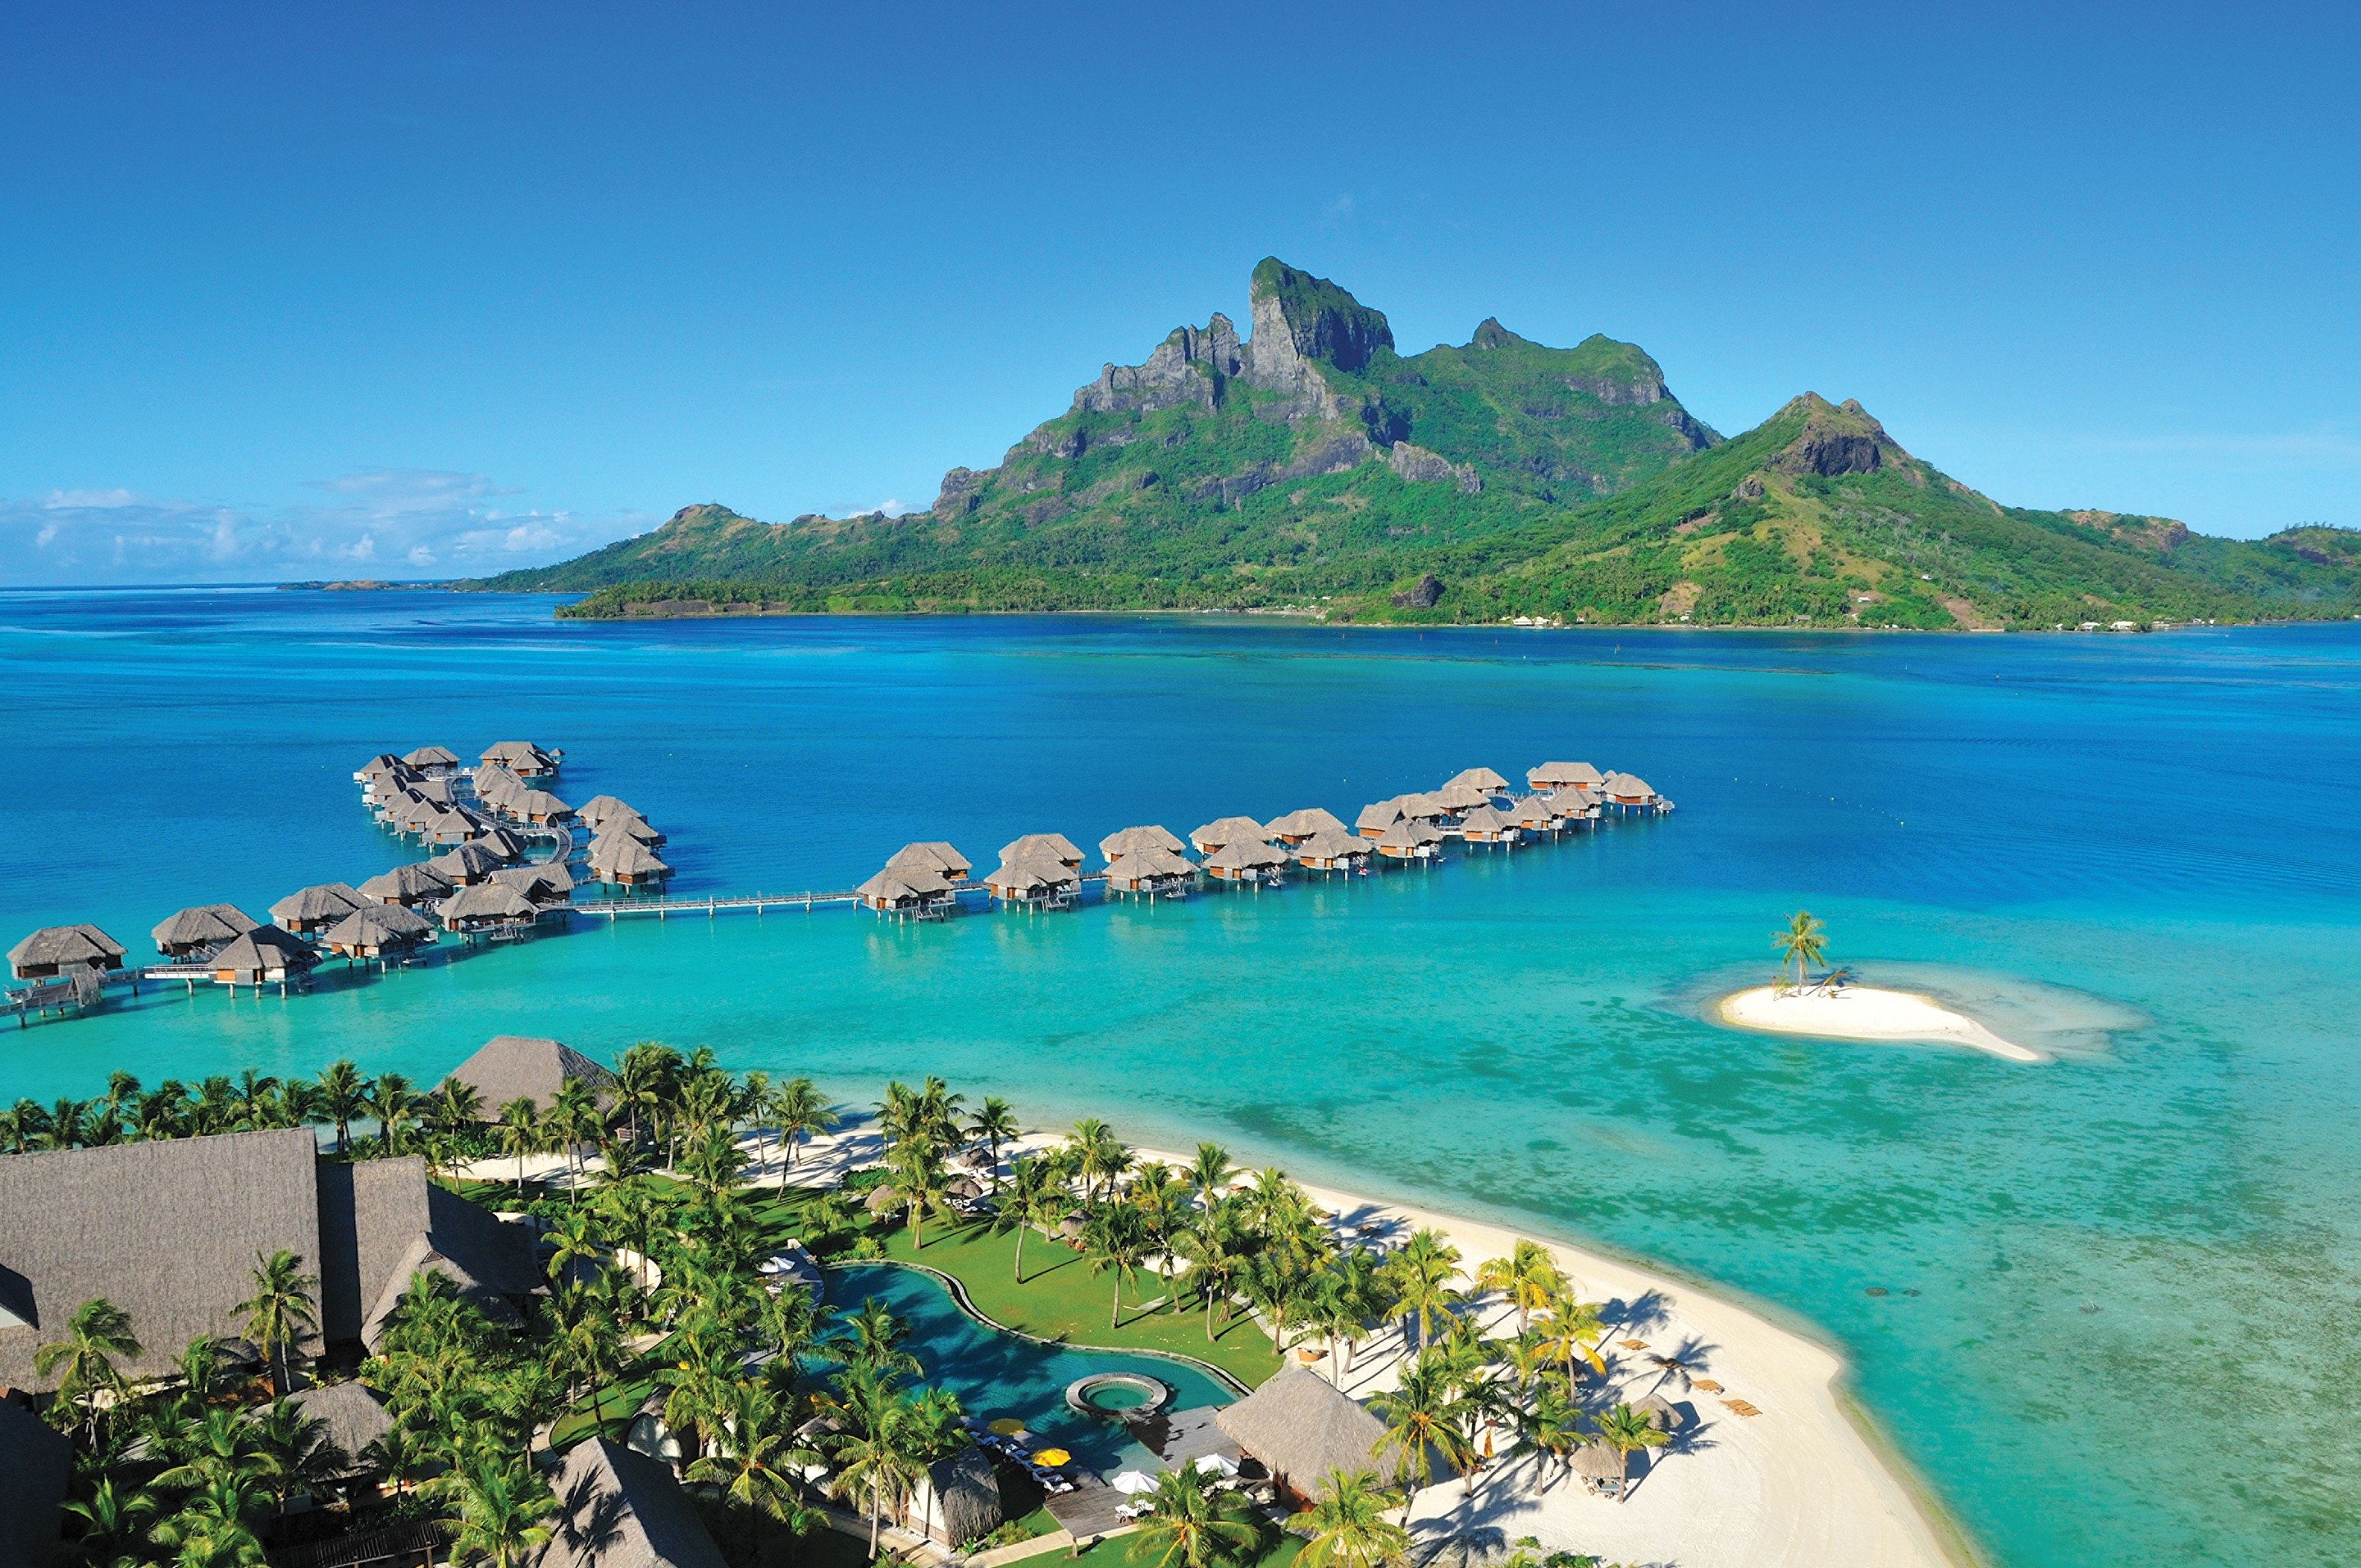 All-Inclusive Resorts Boutique Hotels Grounds Hotels Island Luxury Overwater Bungalow Romance Scenic views Trip Ideas Tropical water sky outdoor mountain Nature landform geographical feature Lake promontory caribbean Sea Coast vacation islet archipelago bay Beach Lagoon Resort cape cove resort town reef shore swimming pond